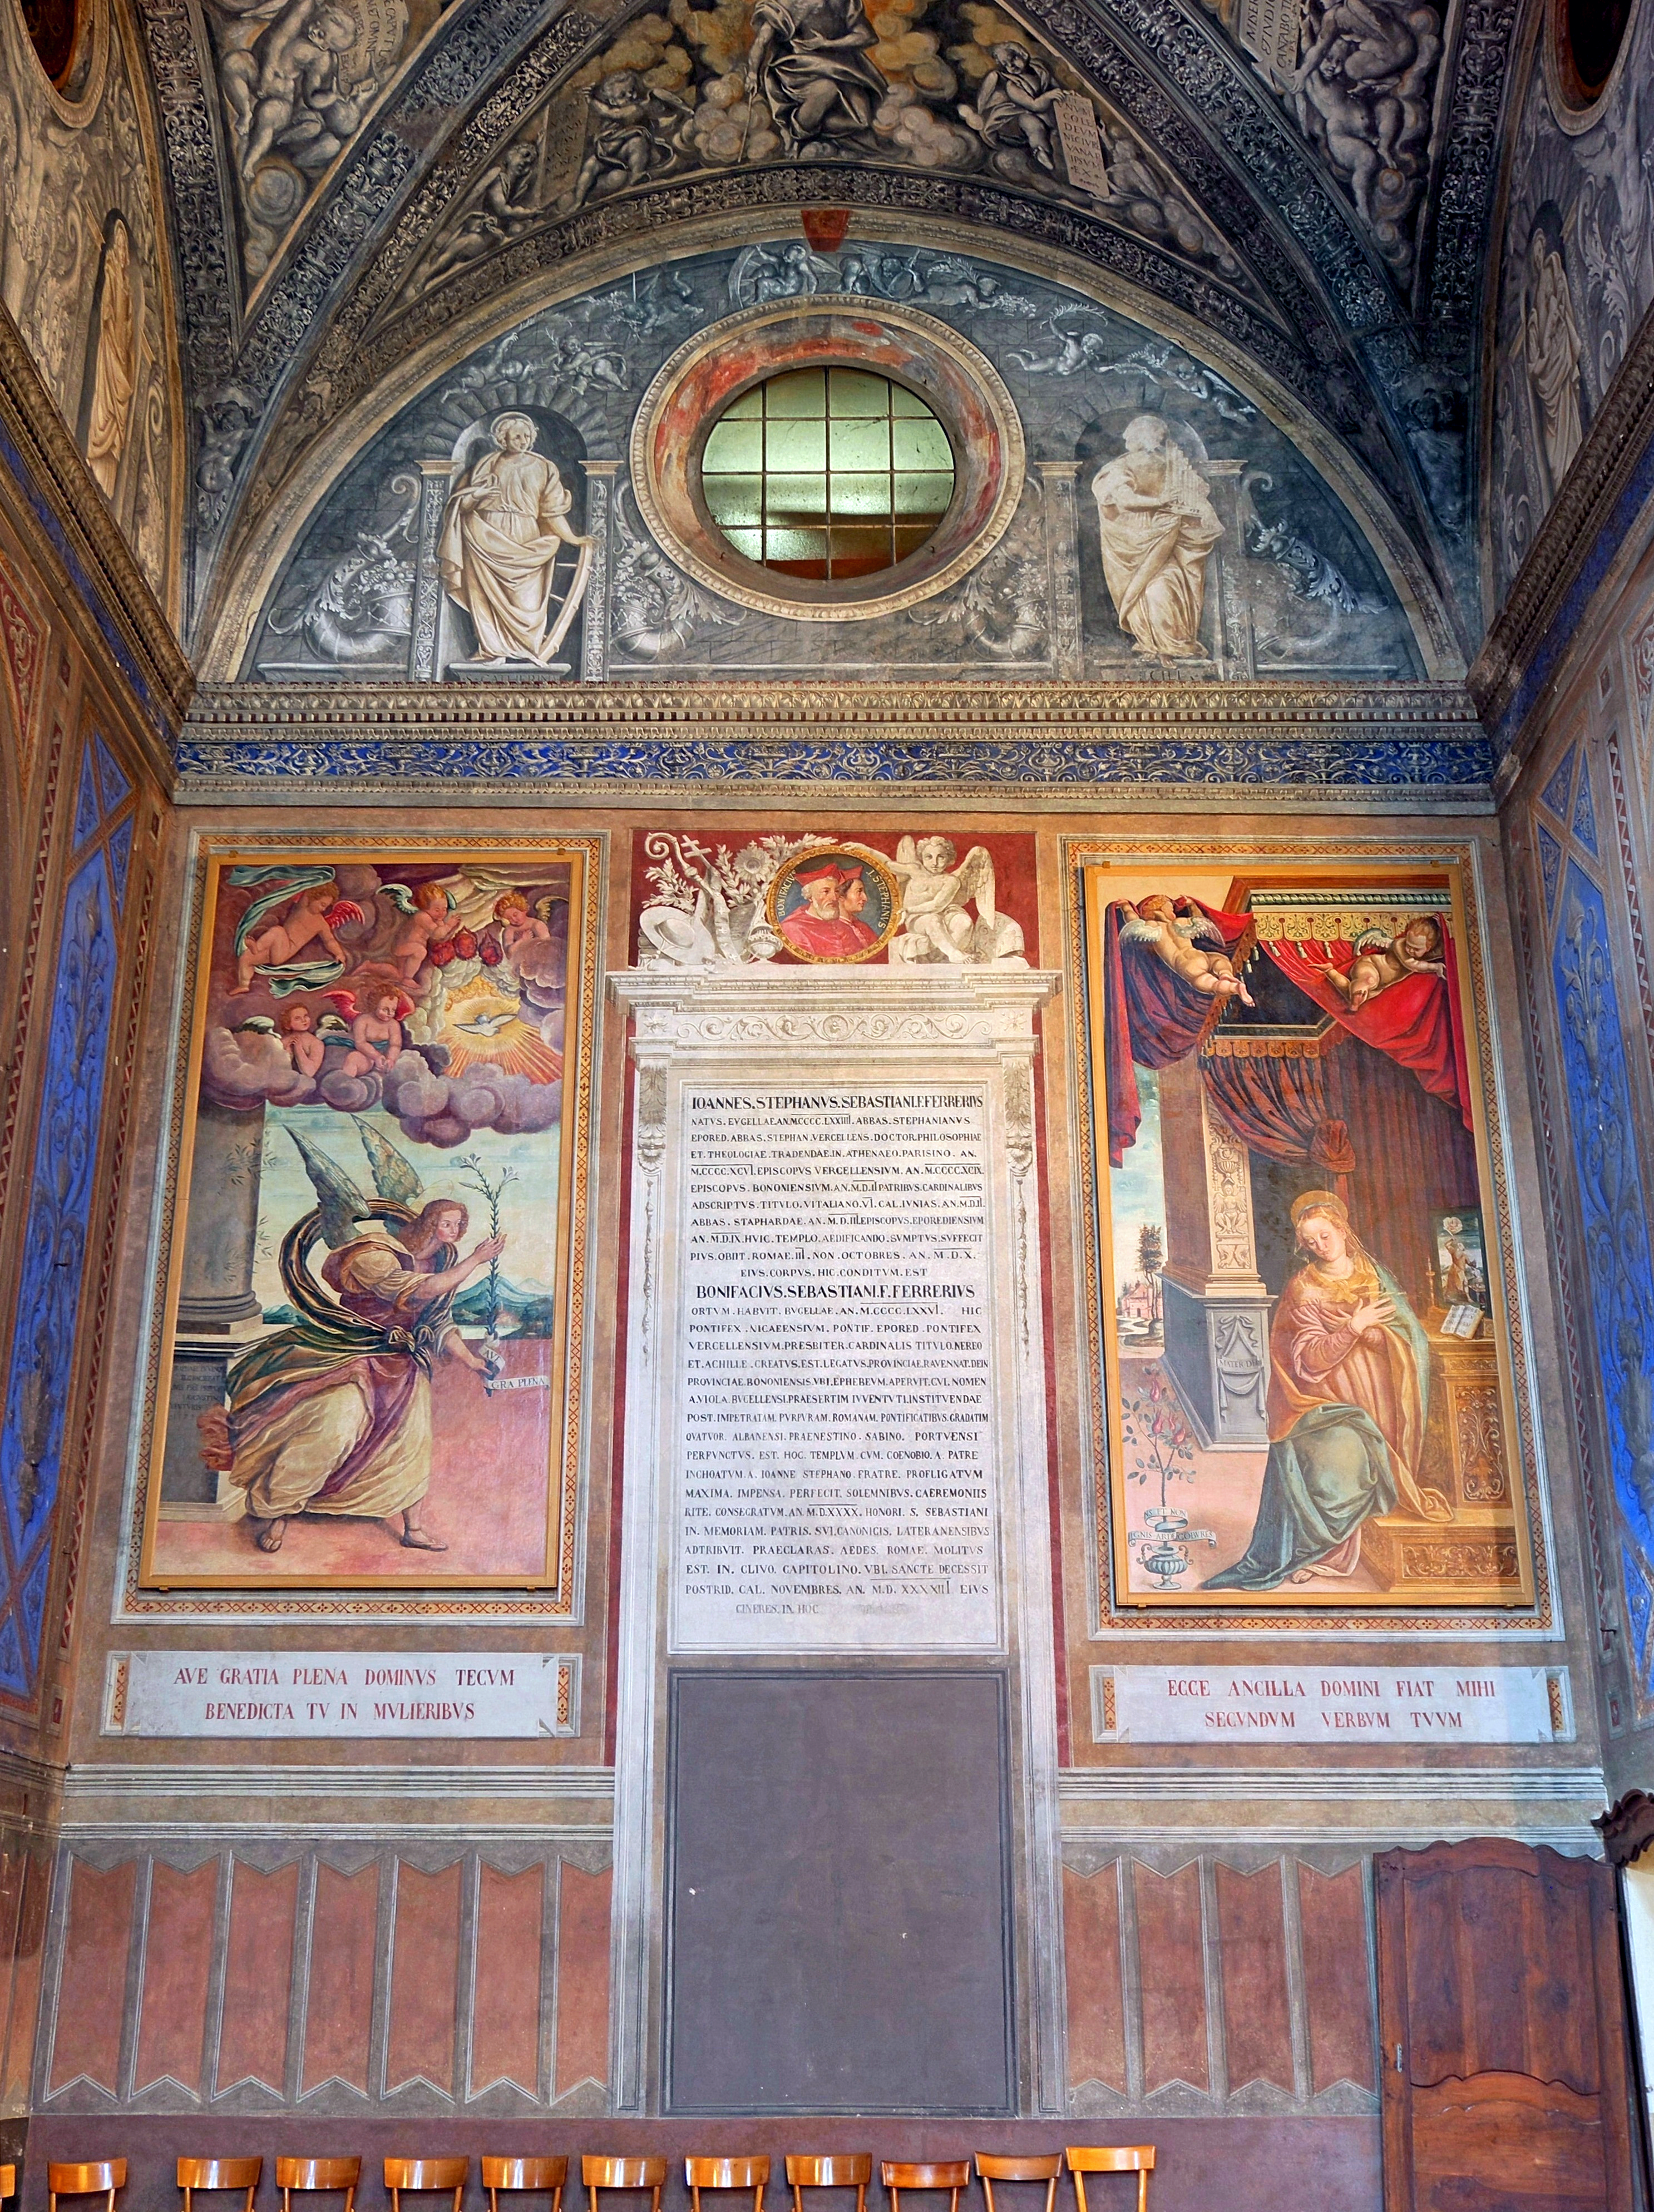 Biella (Italy): Wall of the left transept arm in the Church of San Sebastiano - Biella (Italy)